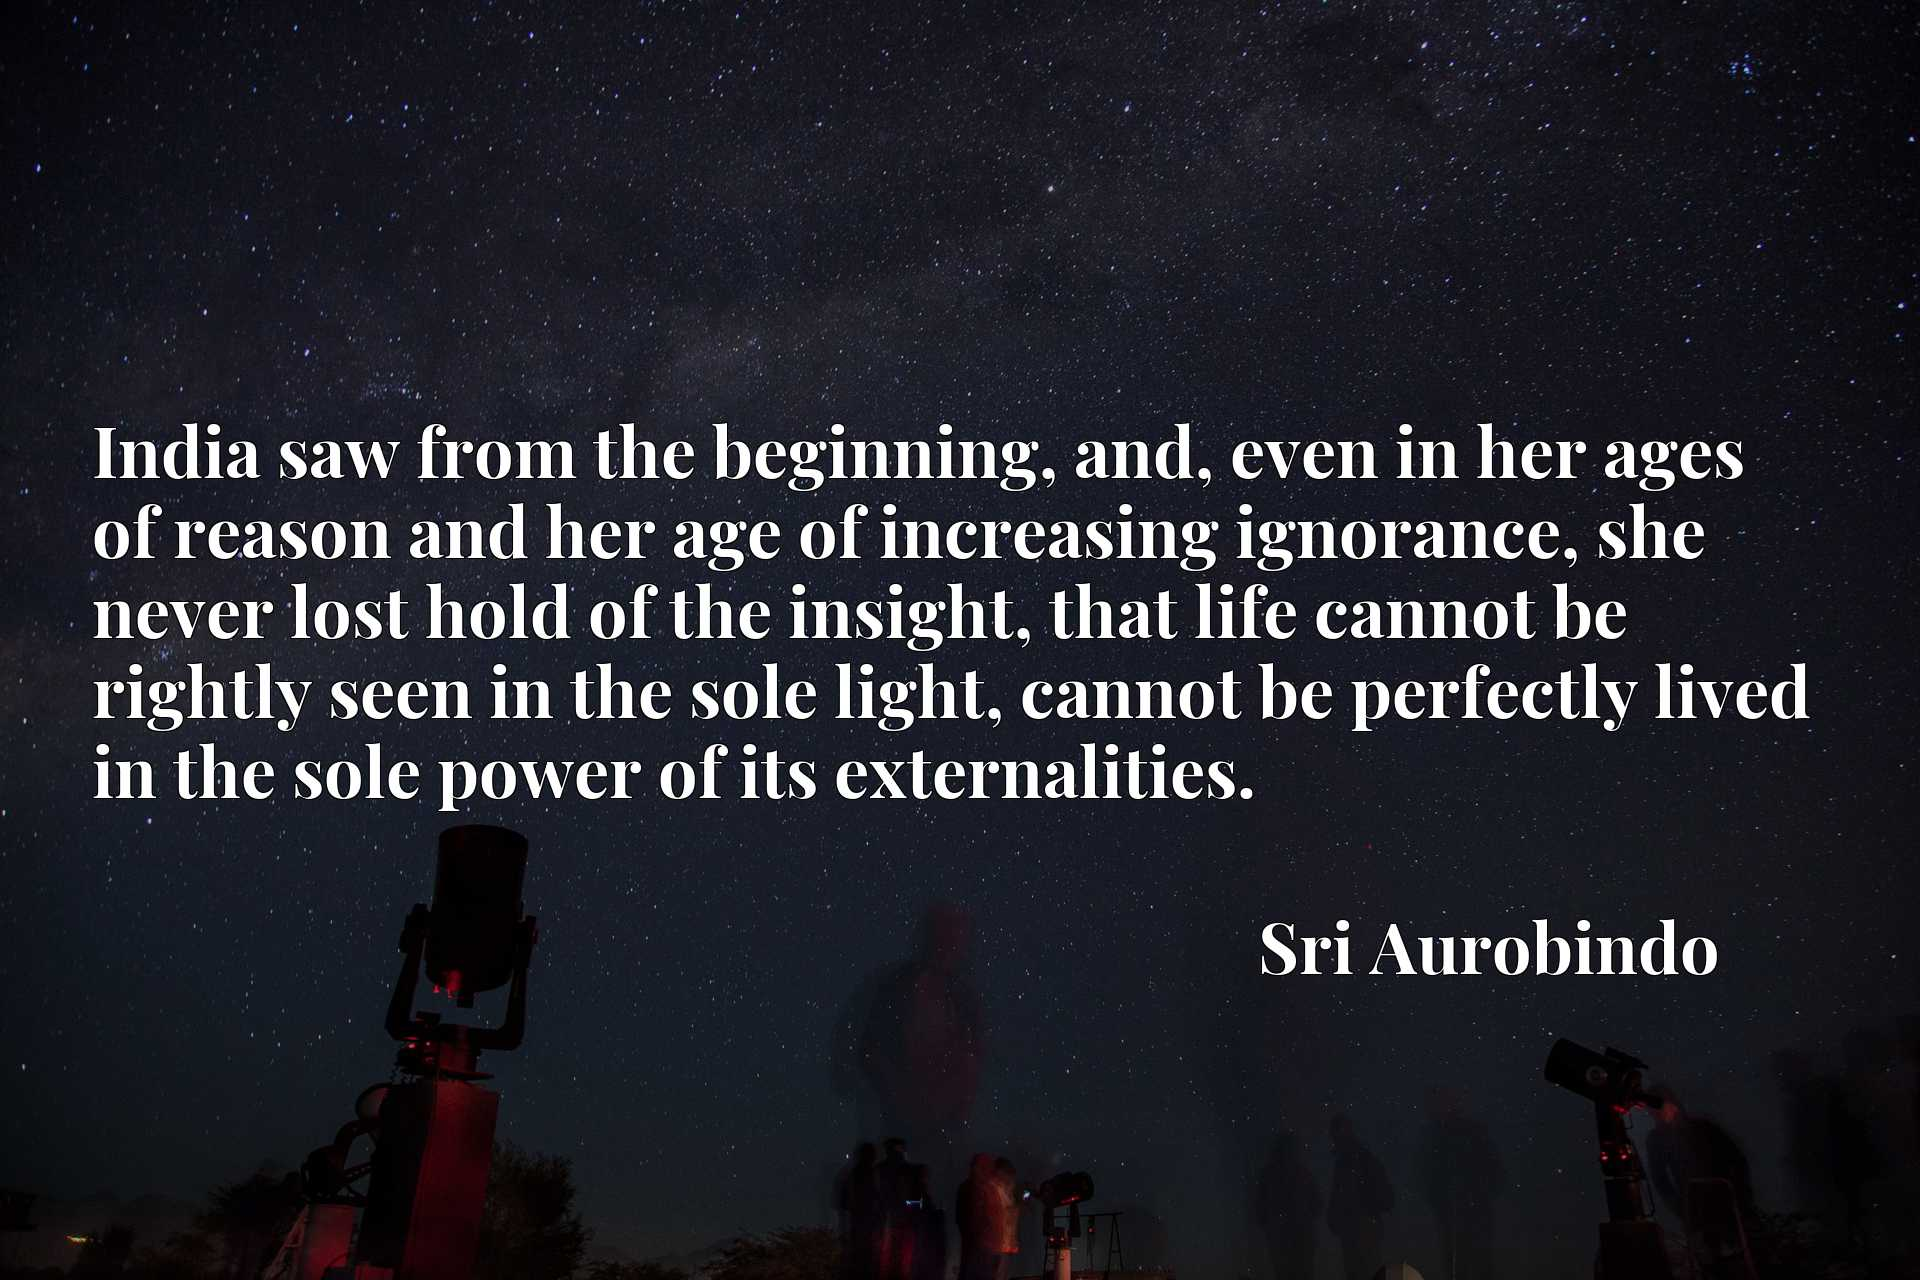 India saw from the beginning, and, even in her ages of reason and her age of increasing ignorance, she never lost hold of the insight, that life cannot be rightly seen in the sole light, cannot be perfectly lived in the sole power of its externalities.